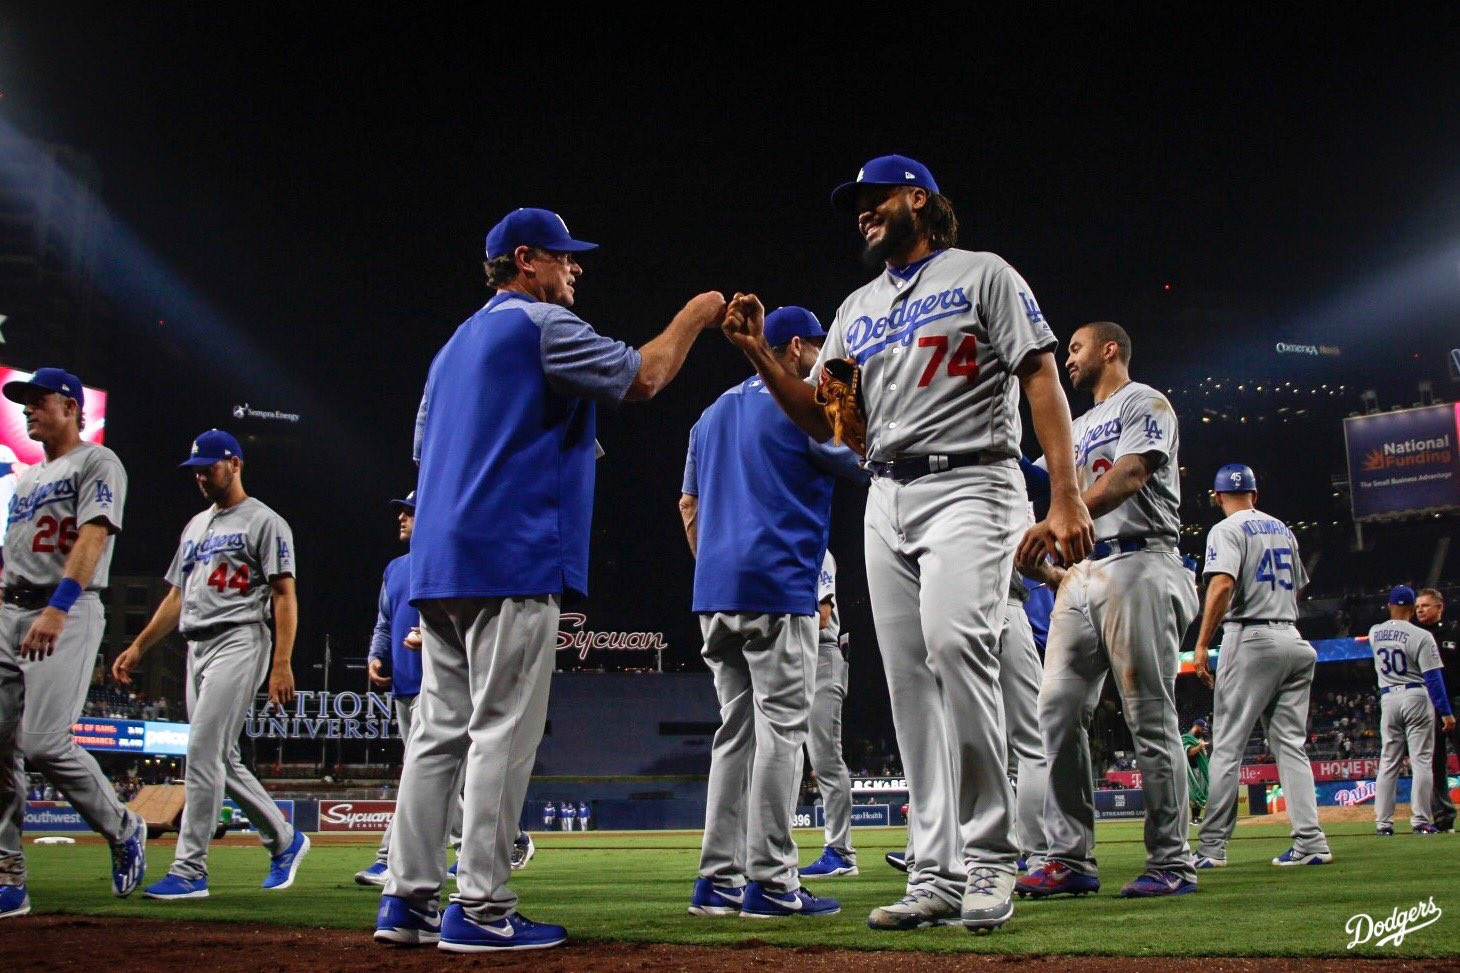 Victory formation! #Dodgers https://t.co/TCDrB8Gtp1